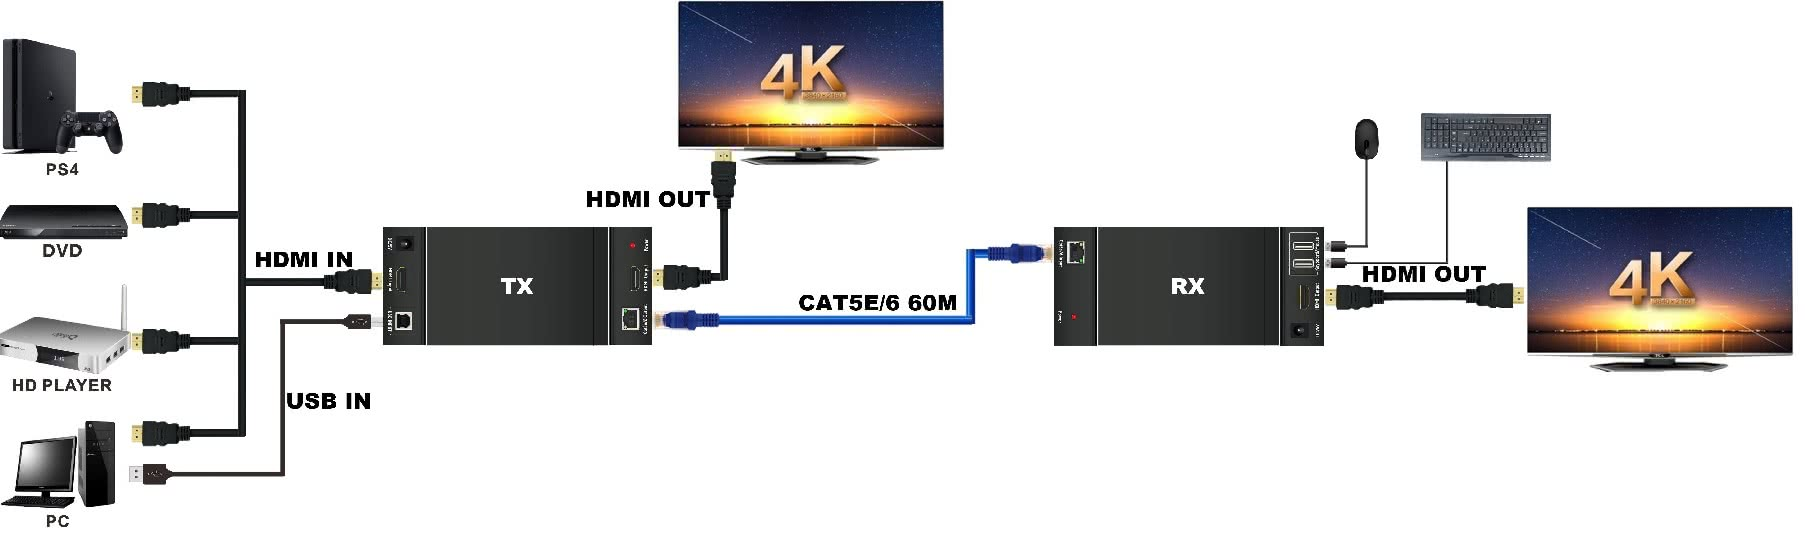 HDMI Extender with KVM Functions over CAT6 Network Cable up to 50 Meters